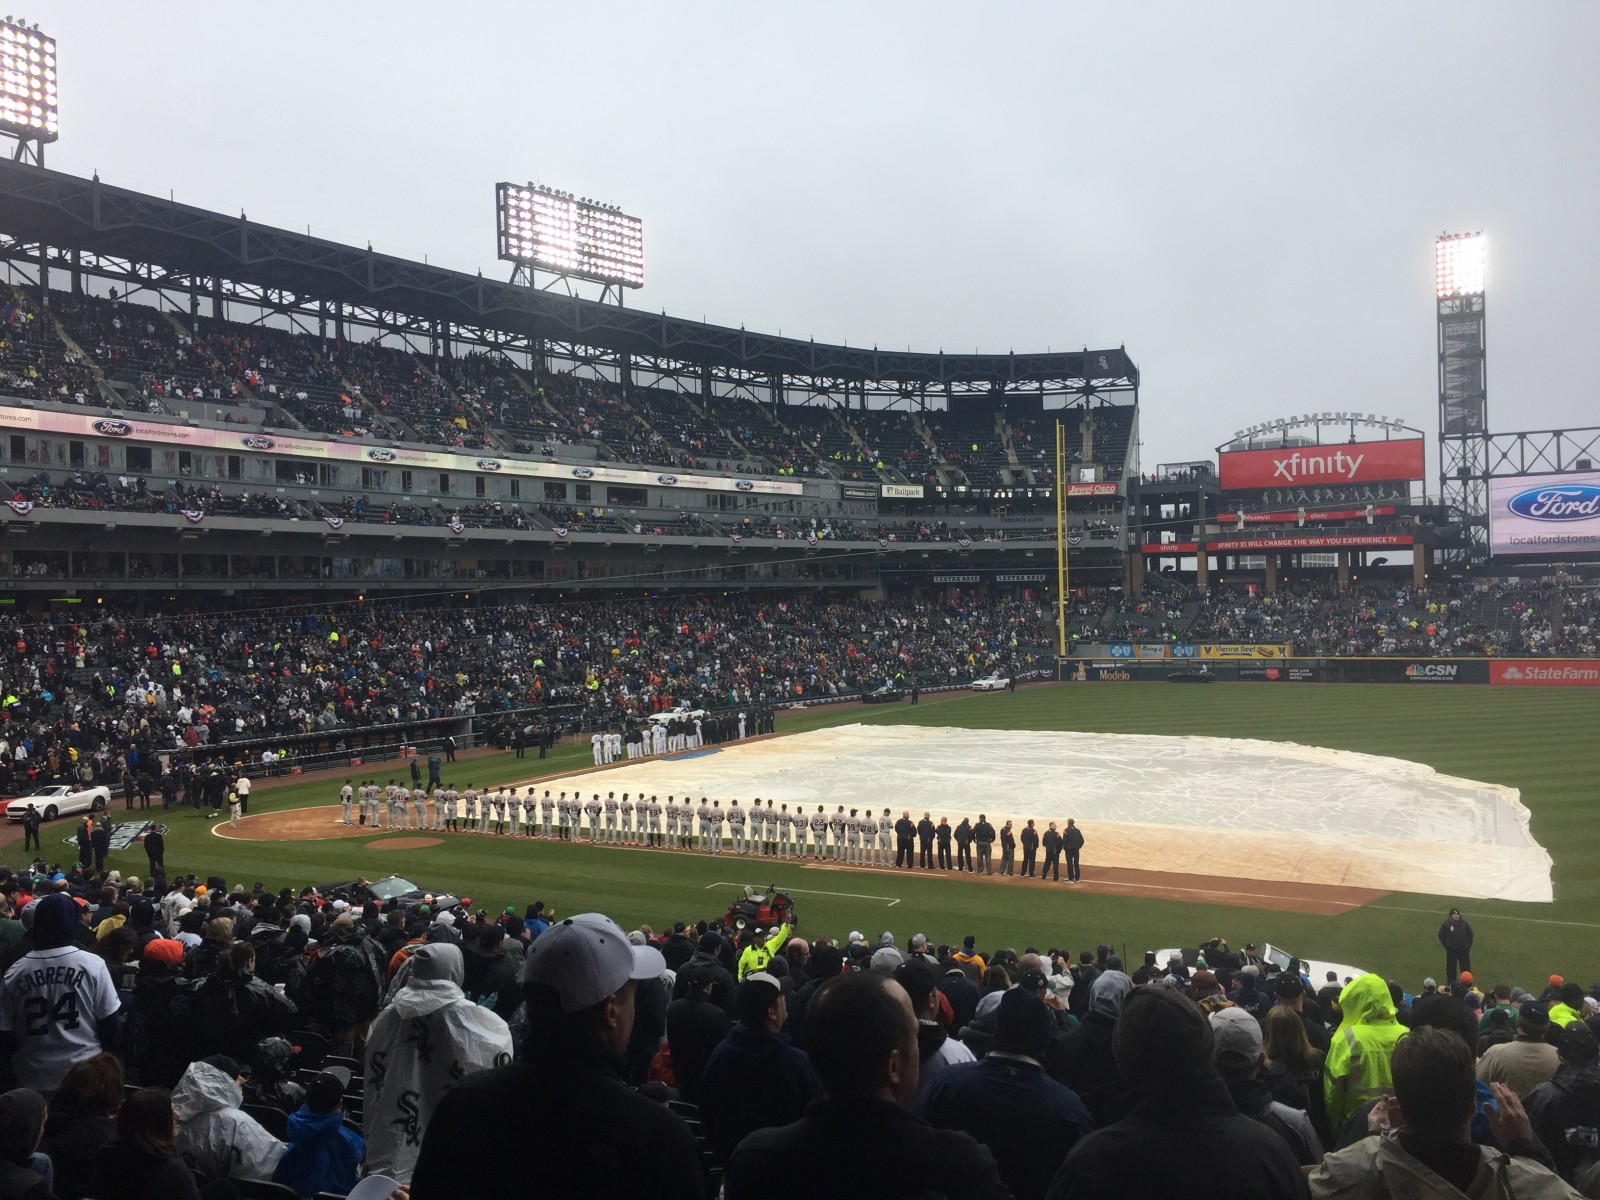 The White Sox did the opening ceremony amidst rain, with the tarp remaining on the field. The game was later cancelled.